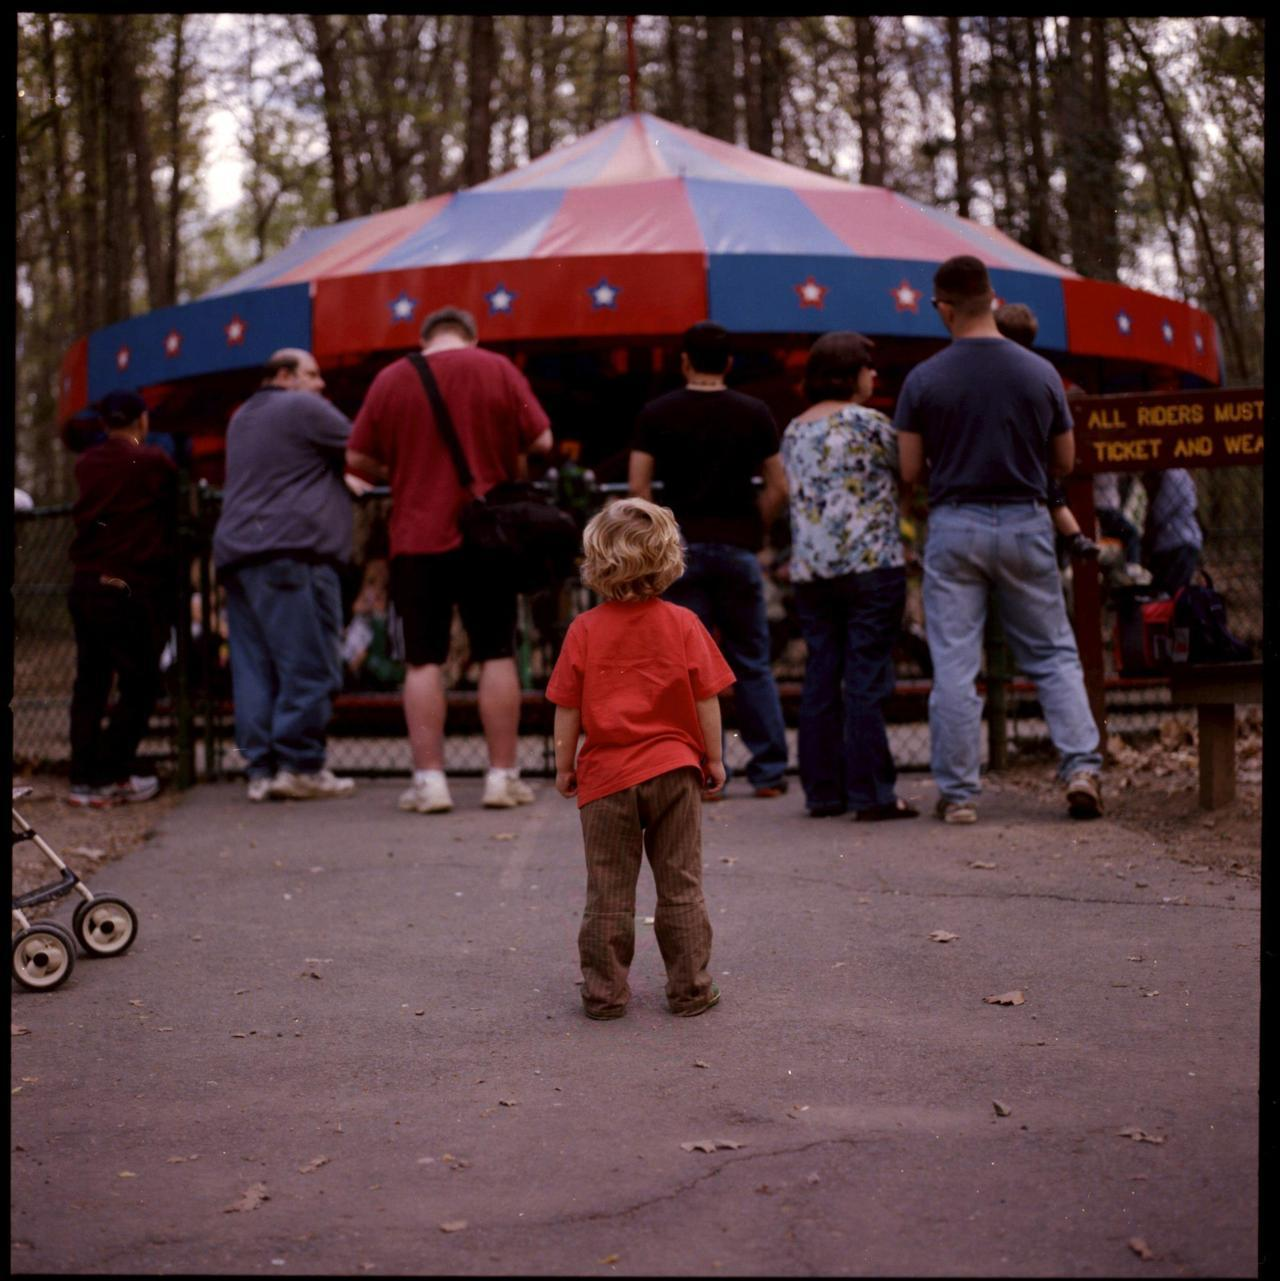 Dream Big, Kid Hasselblad 500CM Zeiss Prontor CF T* 80mm f/2.8 Kodak Portra 400 CanoScan 8800F